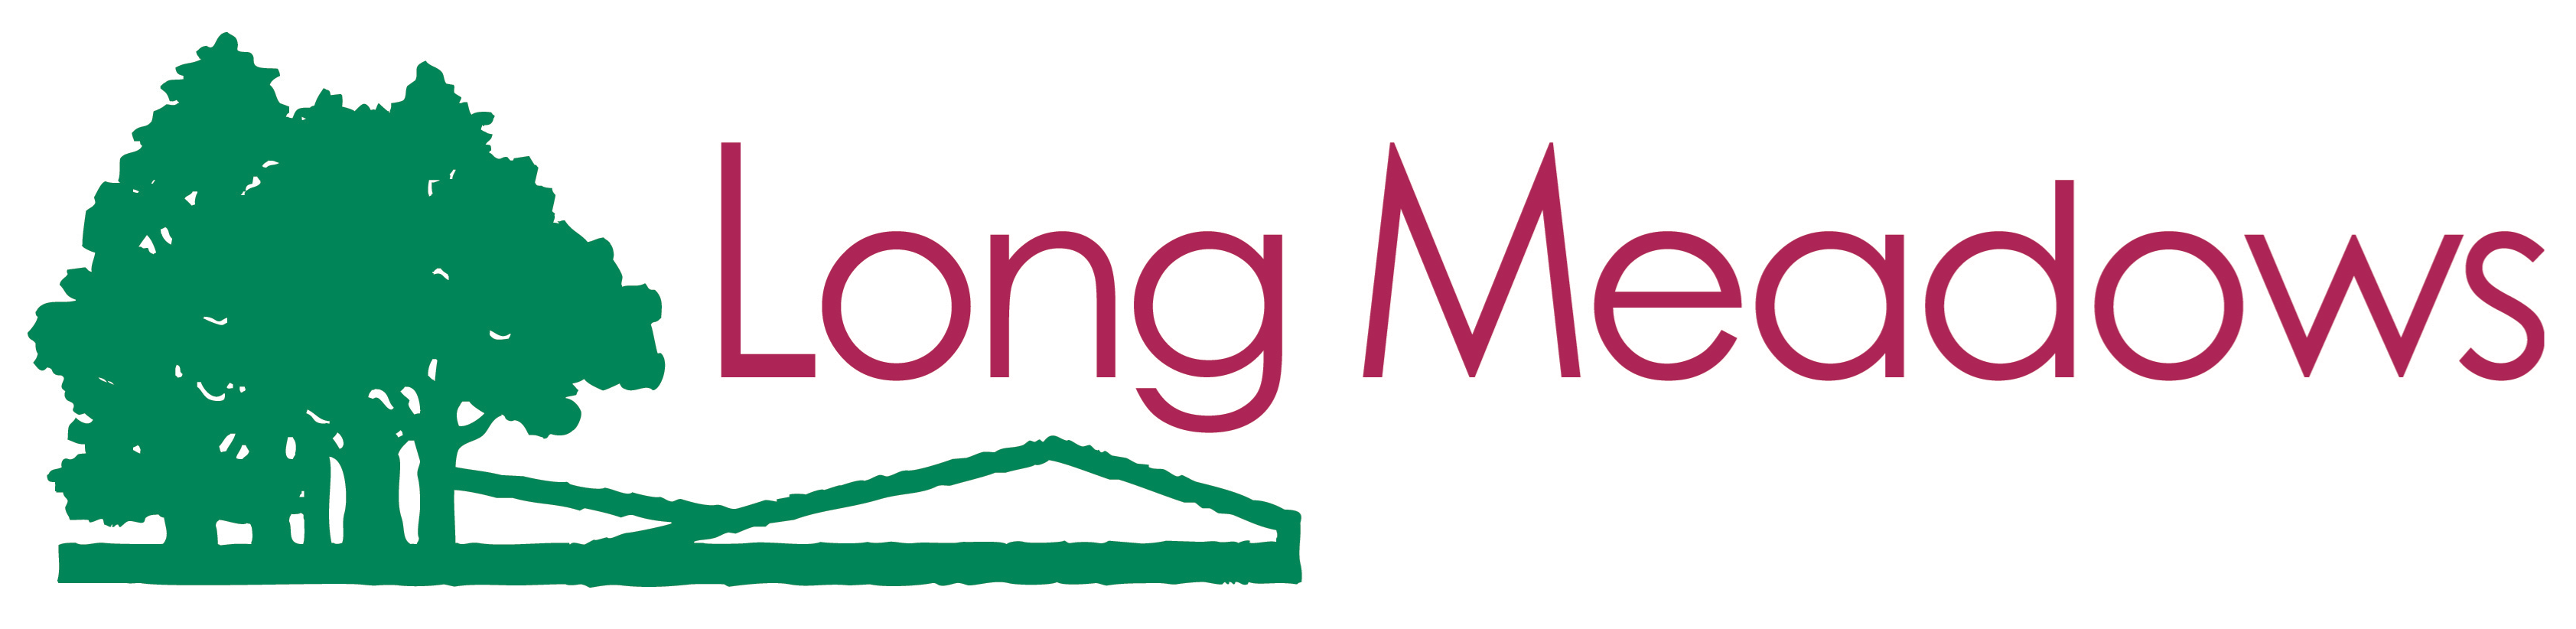 Long Meadows Apartments Logo in Camp Hill, PA | Long Meadows Apartments | Property Management, Inc.